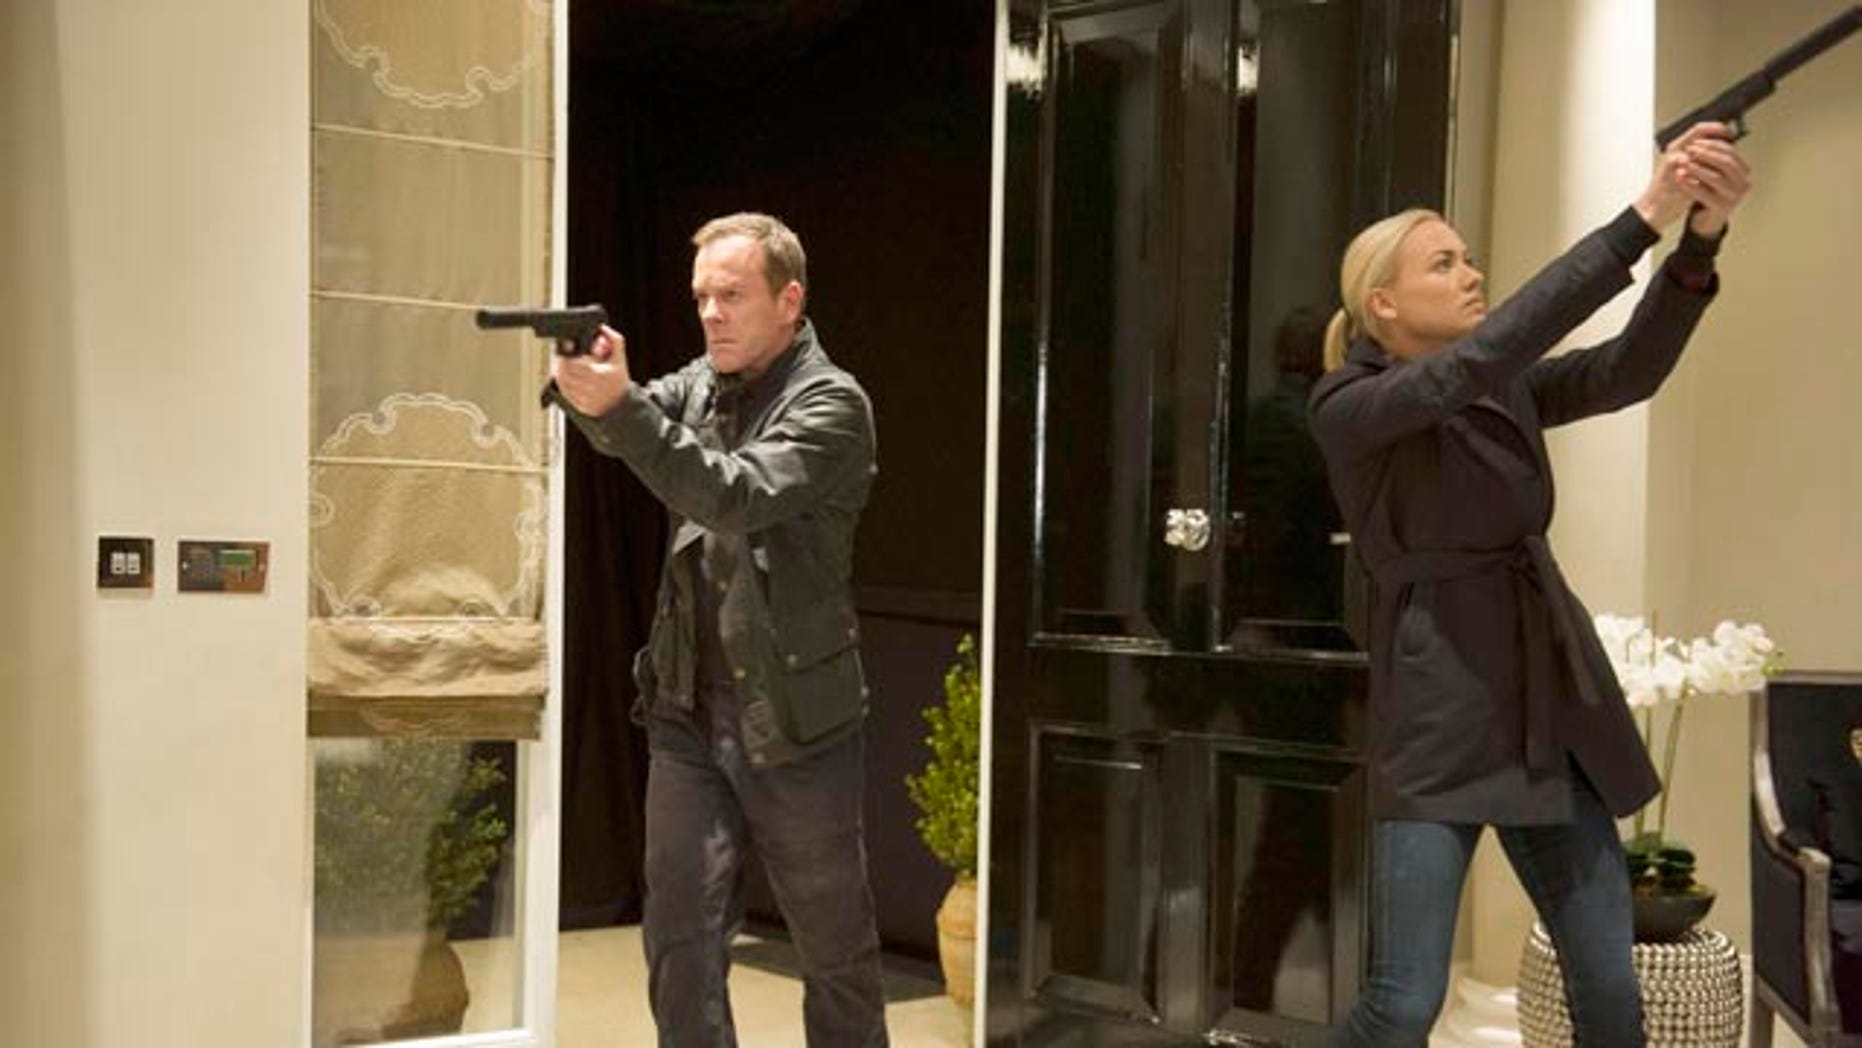 Kiefer Sutherland (Jack Bauer) and Yvonne Strahovski (Kate Morgan) take aim in '24: Live Another Day' (courtesy Fox Broadcasting)